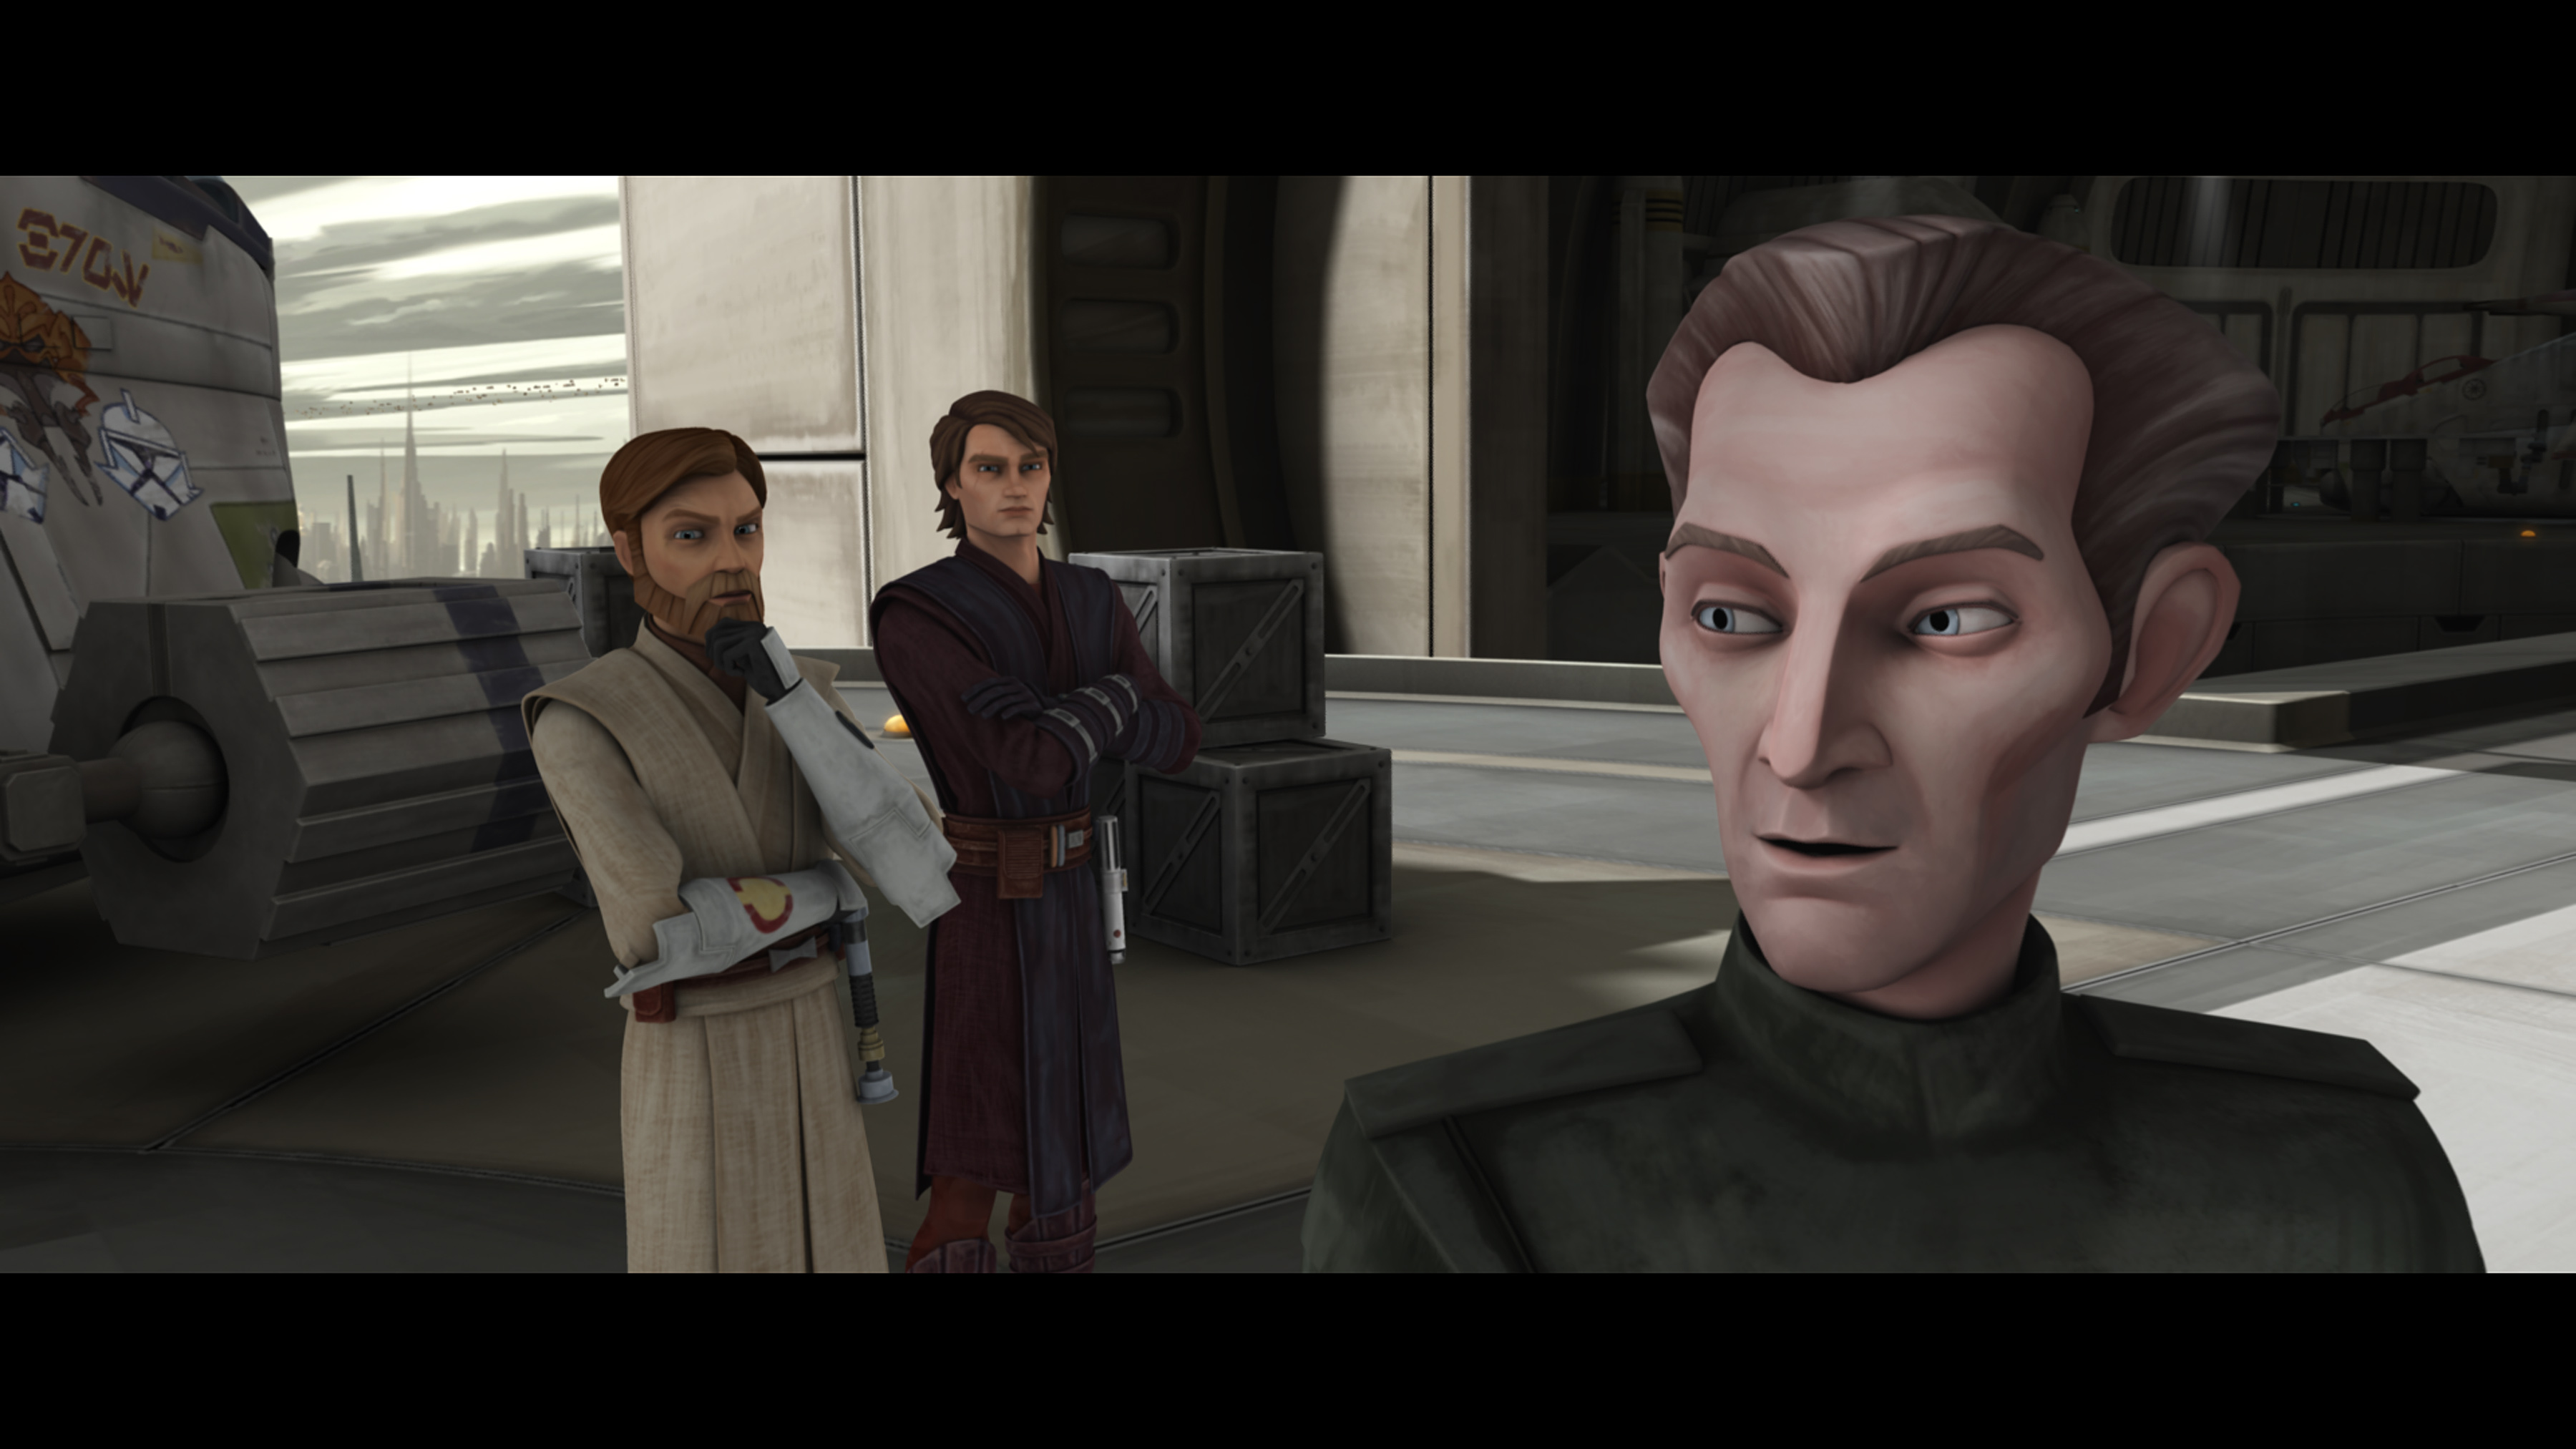 Tarkin, Obi-Wan Kenobi, and Anakin Skywalker